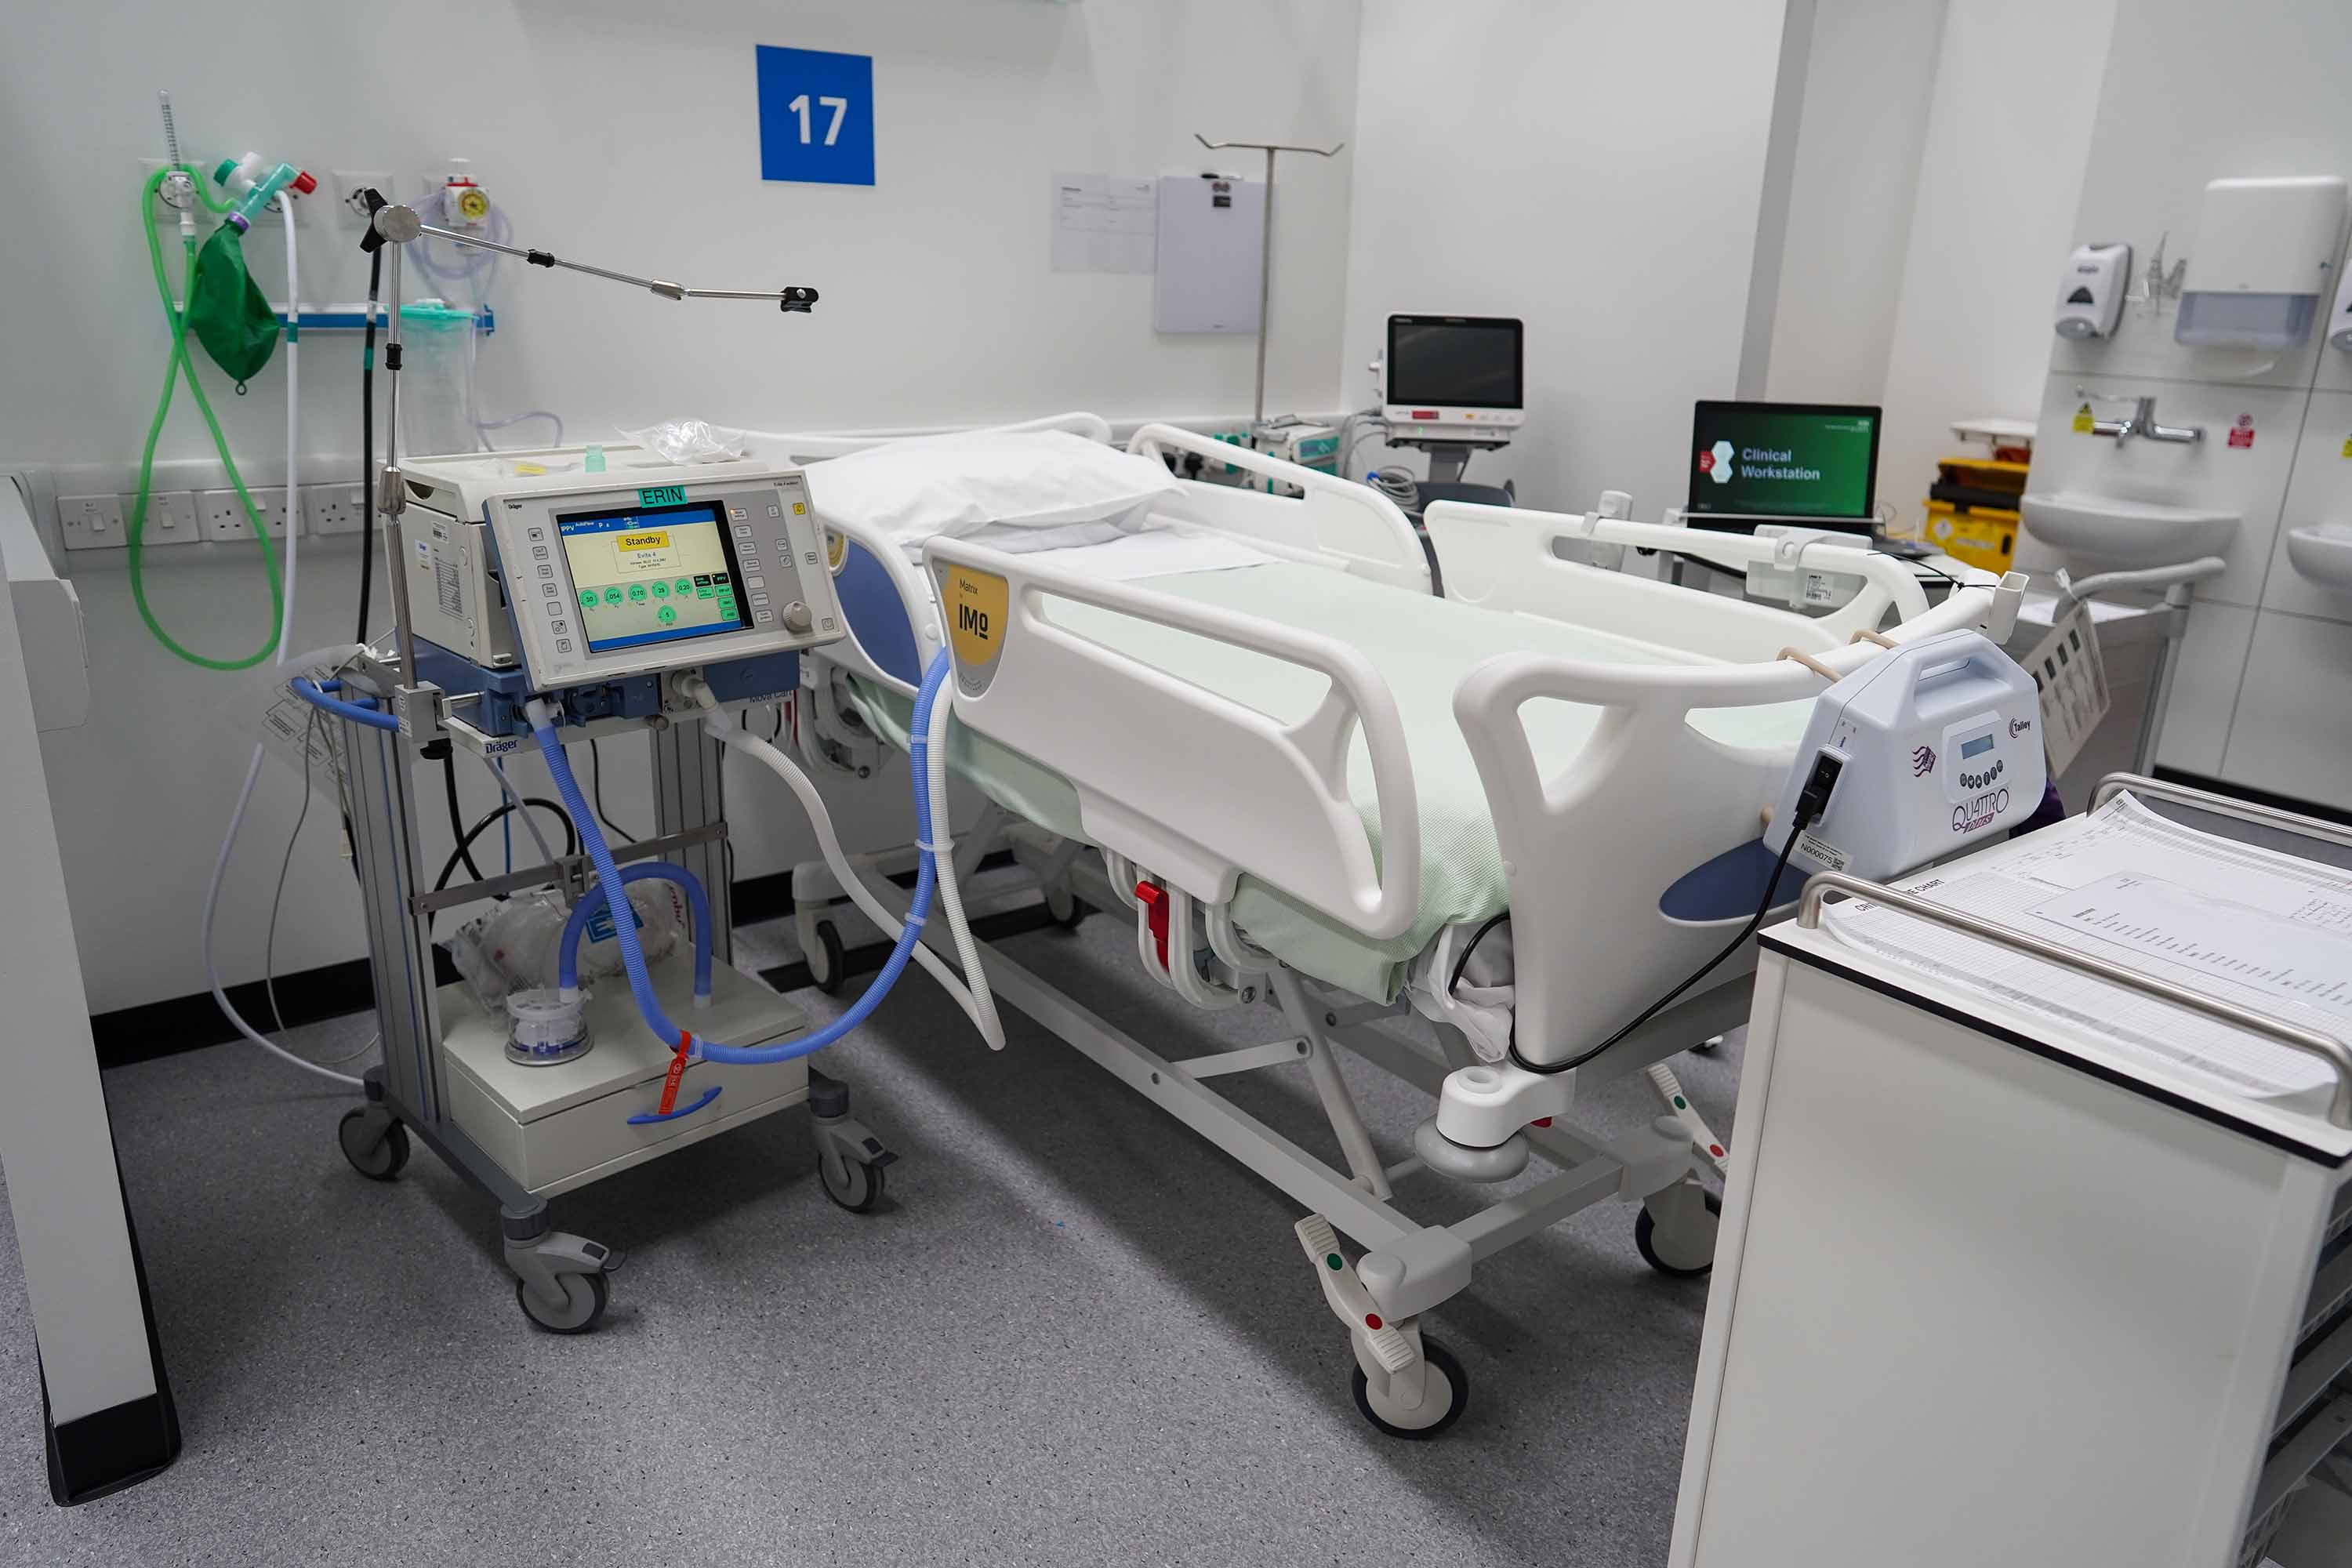 A ventilator, left, is set up beside a hospital bed at the NHS Nightingale North East hospital on May 4, 2020, in Sunderland, England.